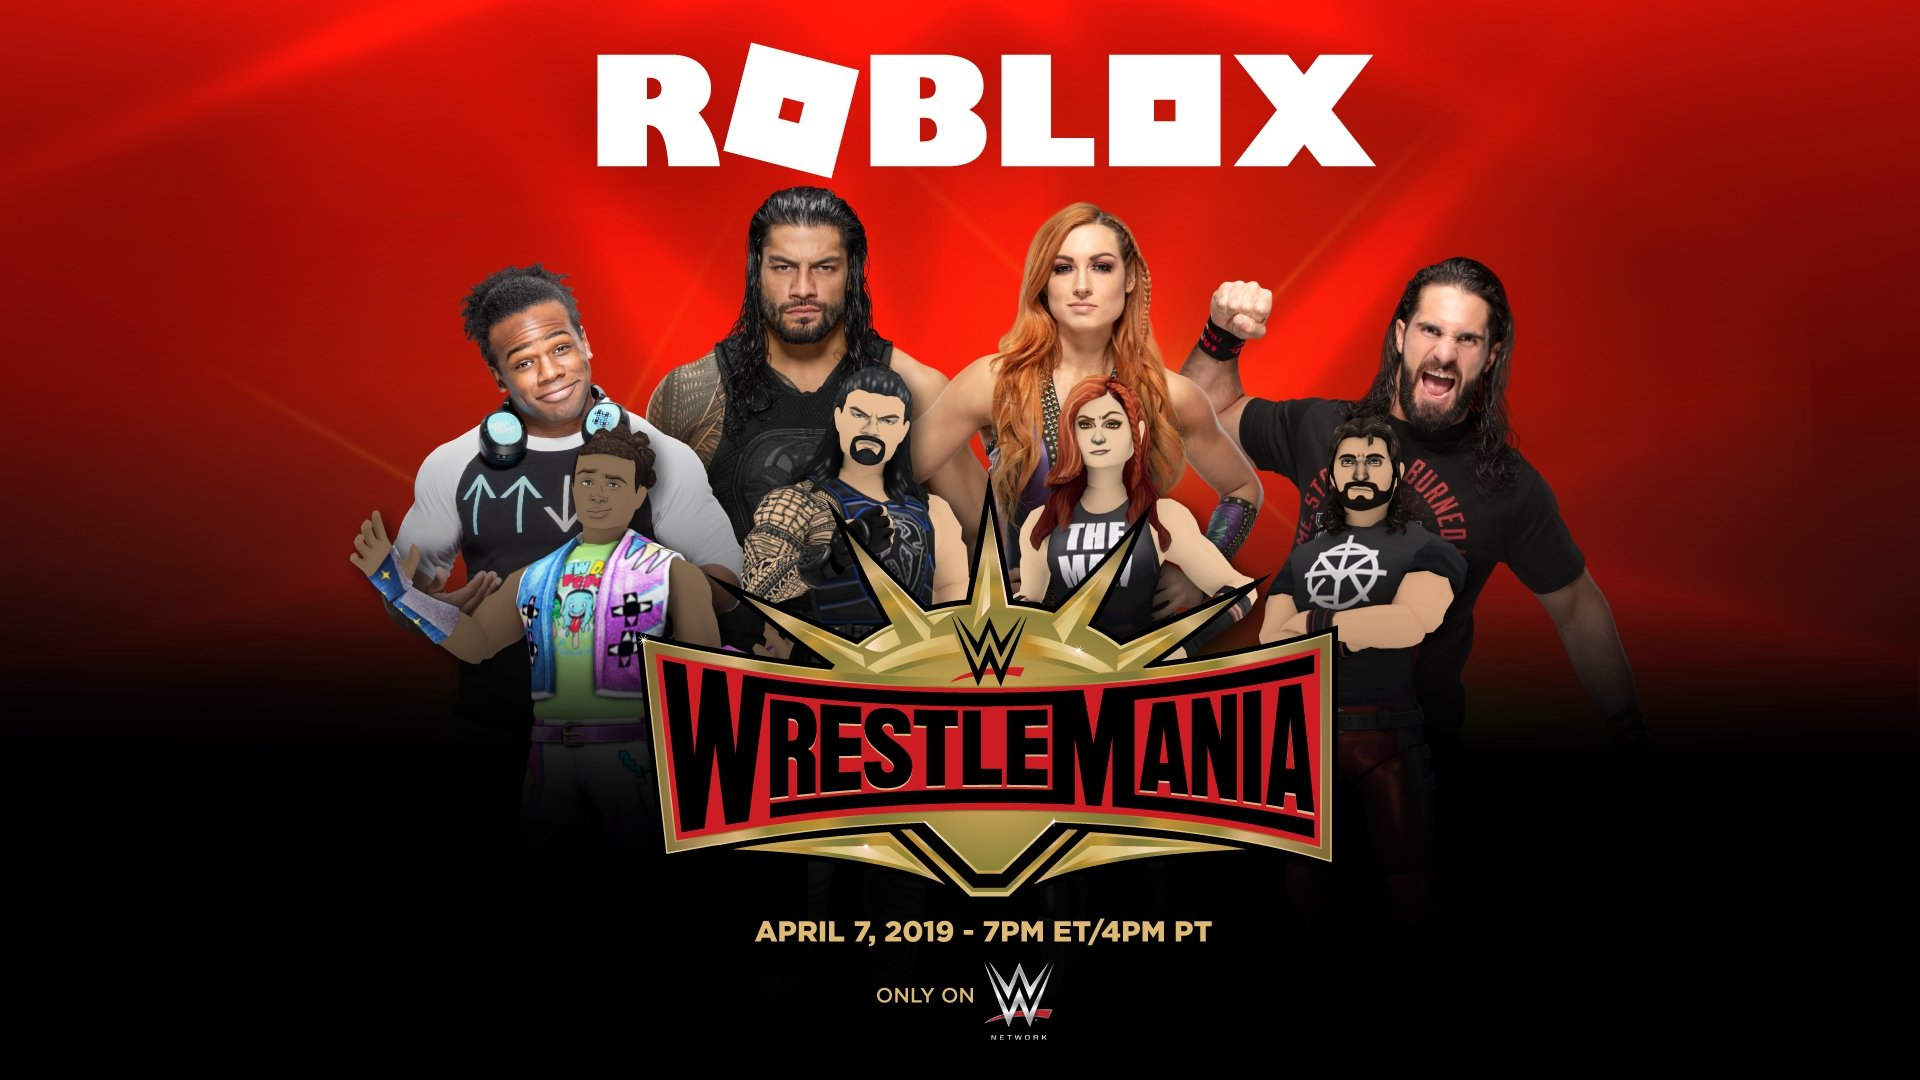 Roblox and WWE Partner to Celebrate WrestleMania